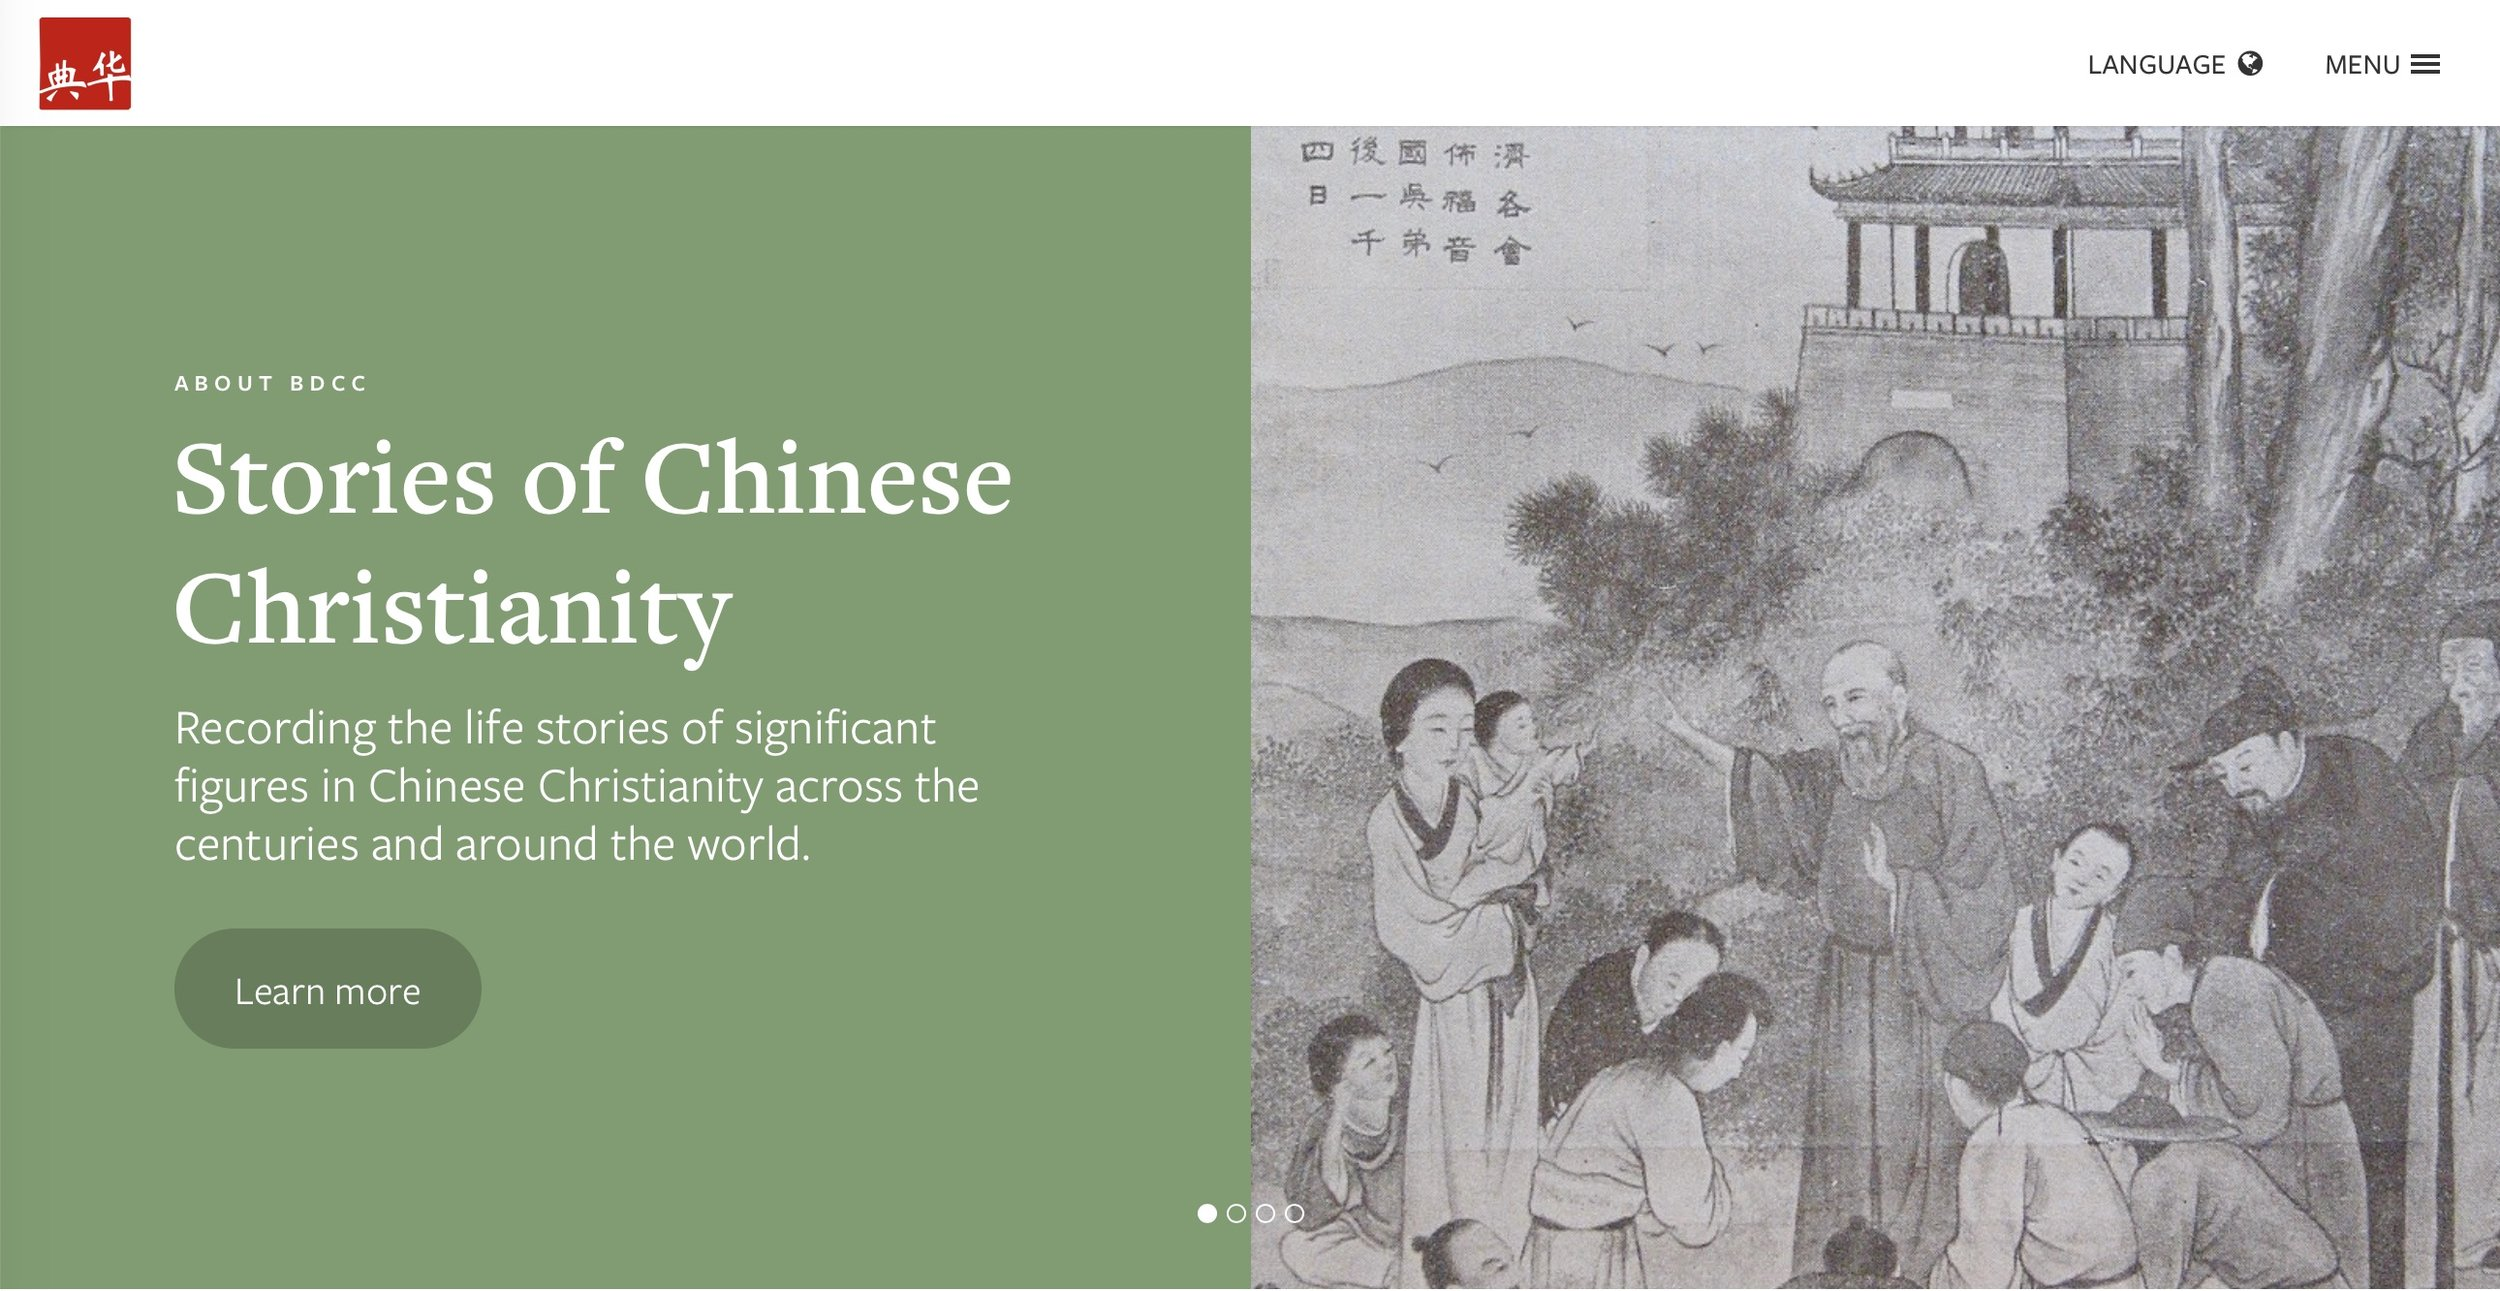 Biographical Dictionary of Chinese Christianity - Recording the life stories of significant figures in Chinese Christianity across the centuries and around the world.